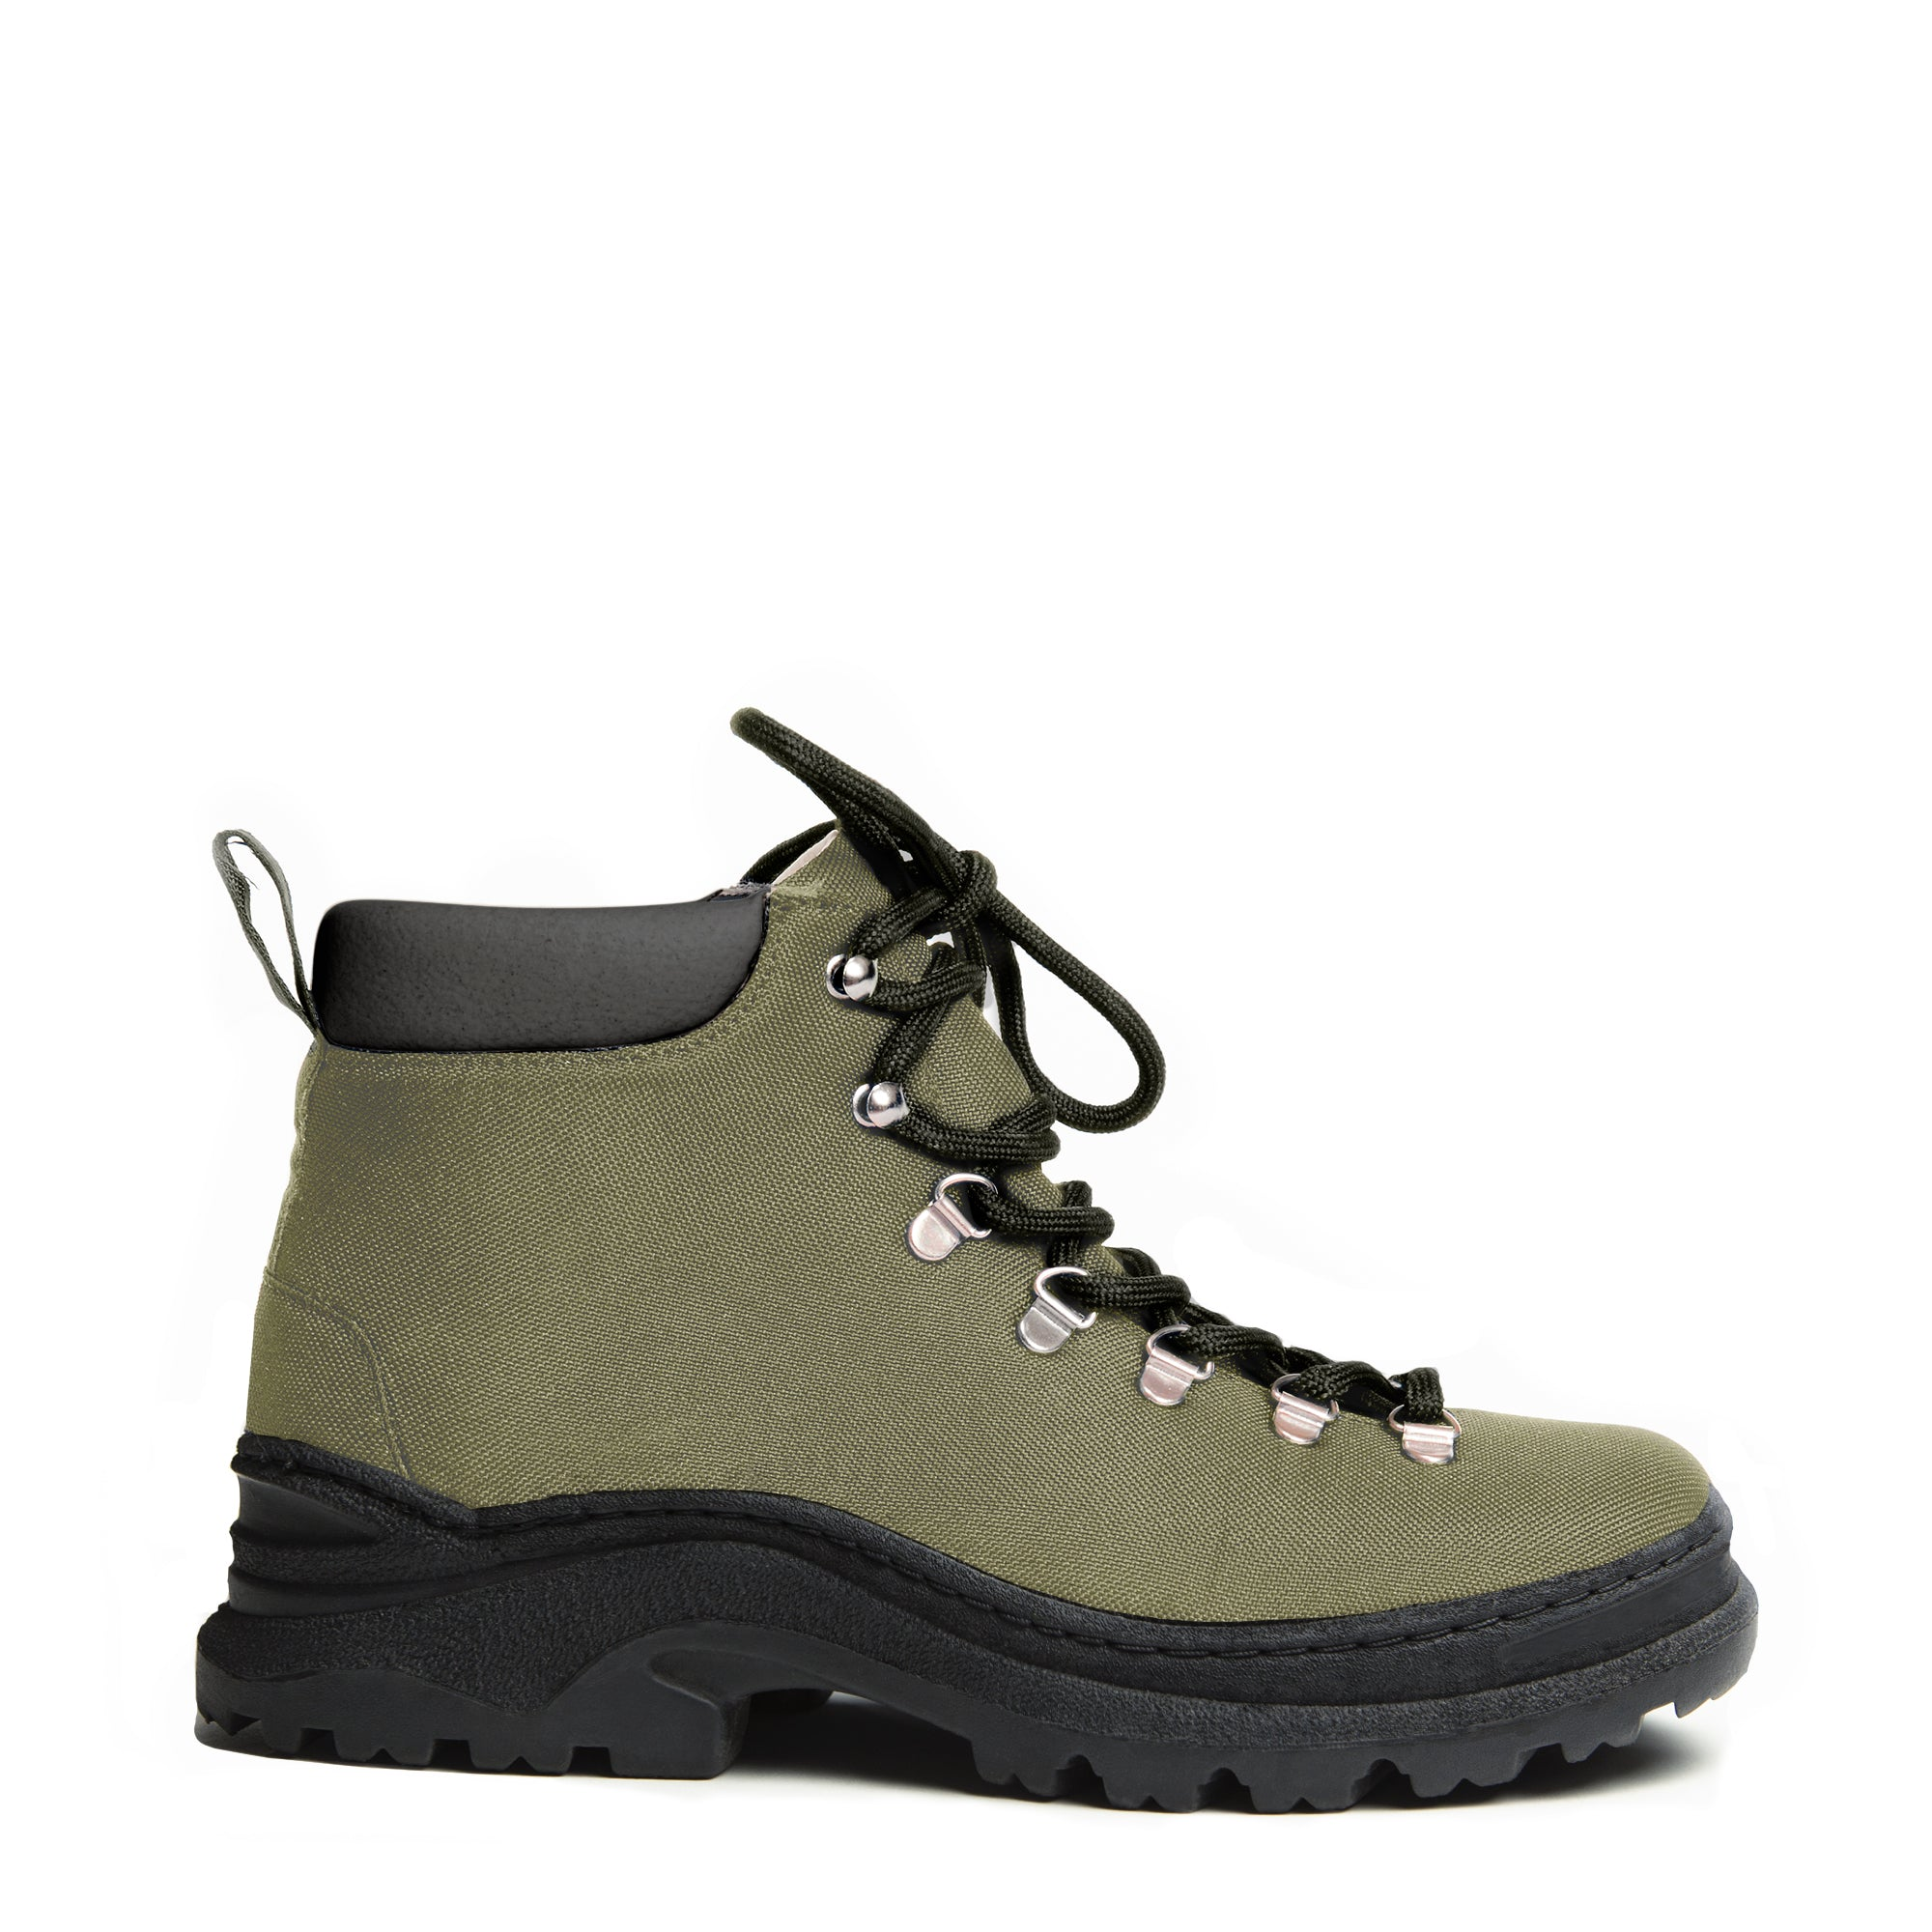 The Weekend Boot Classic Sage